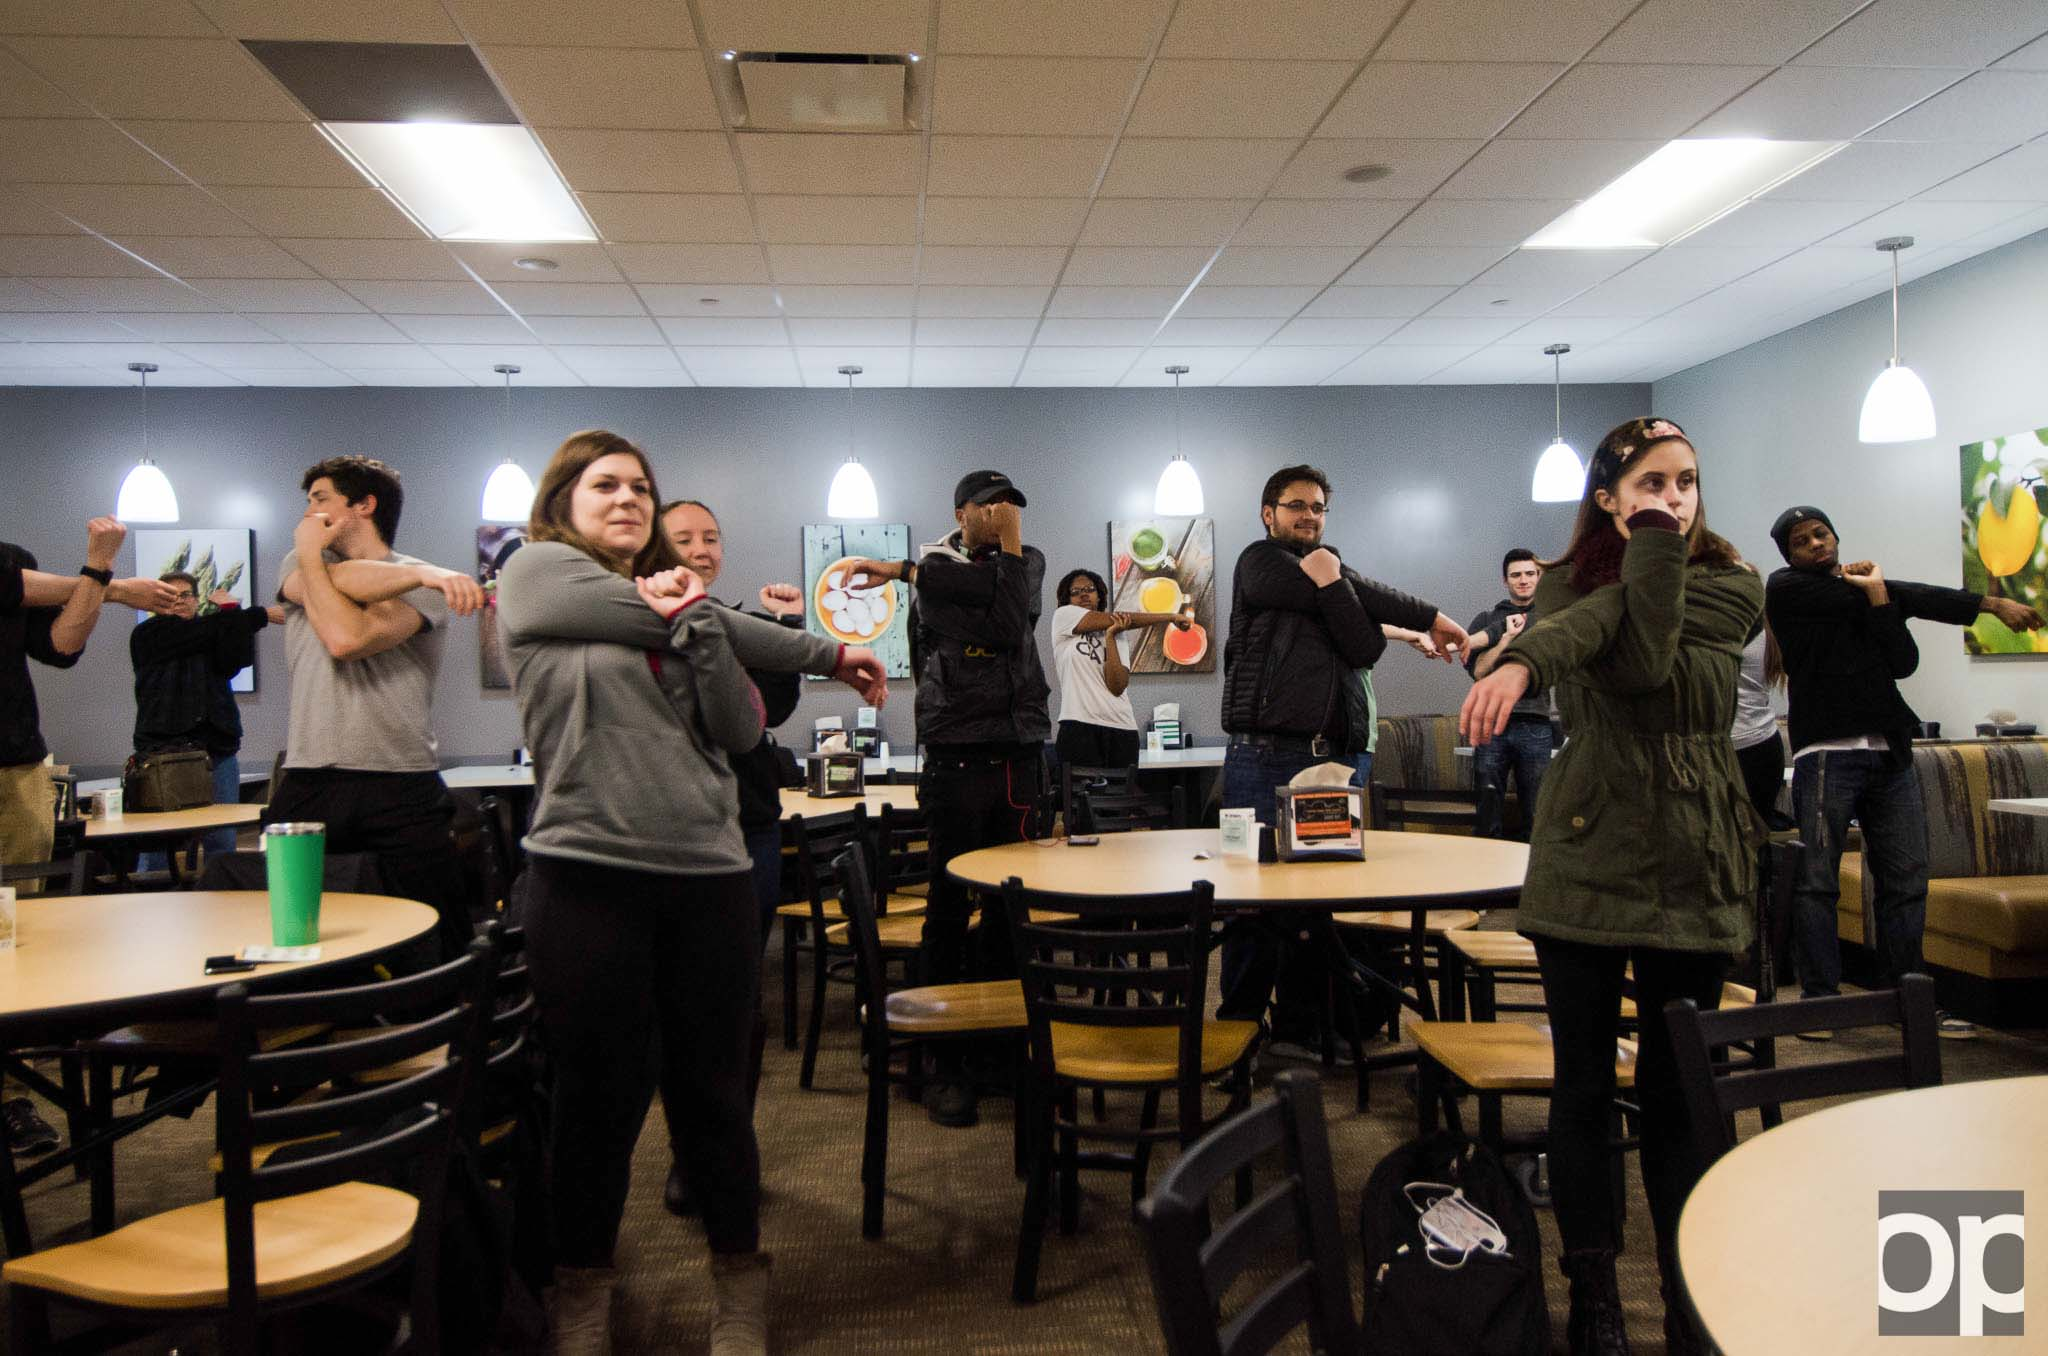 Participants practice different stretches and learn how to do quick activity movements while cramming for finals week at